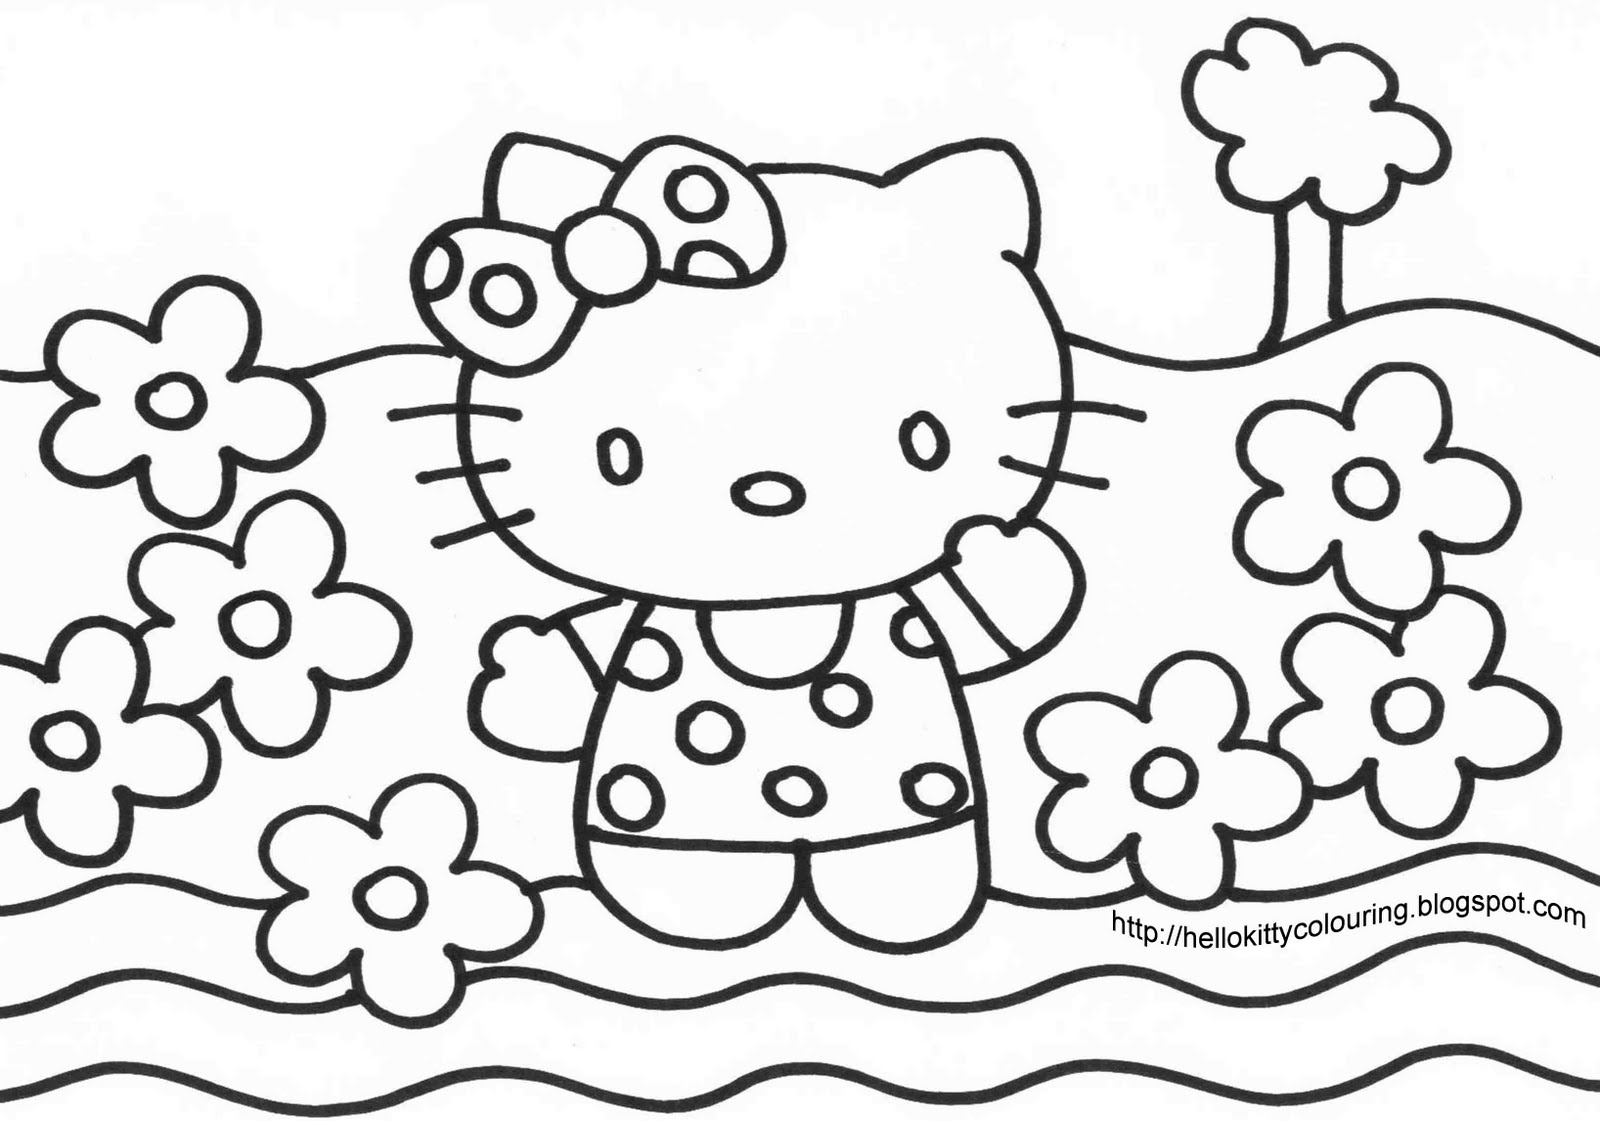 HELLO KITTY AT THE BEACH COLOURING PAGE